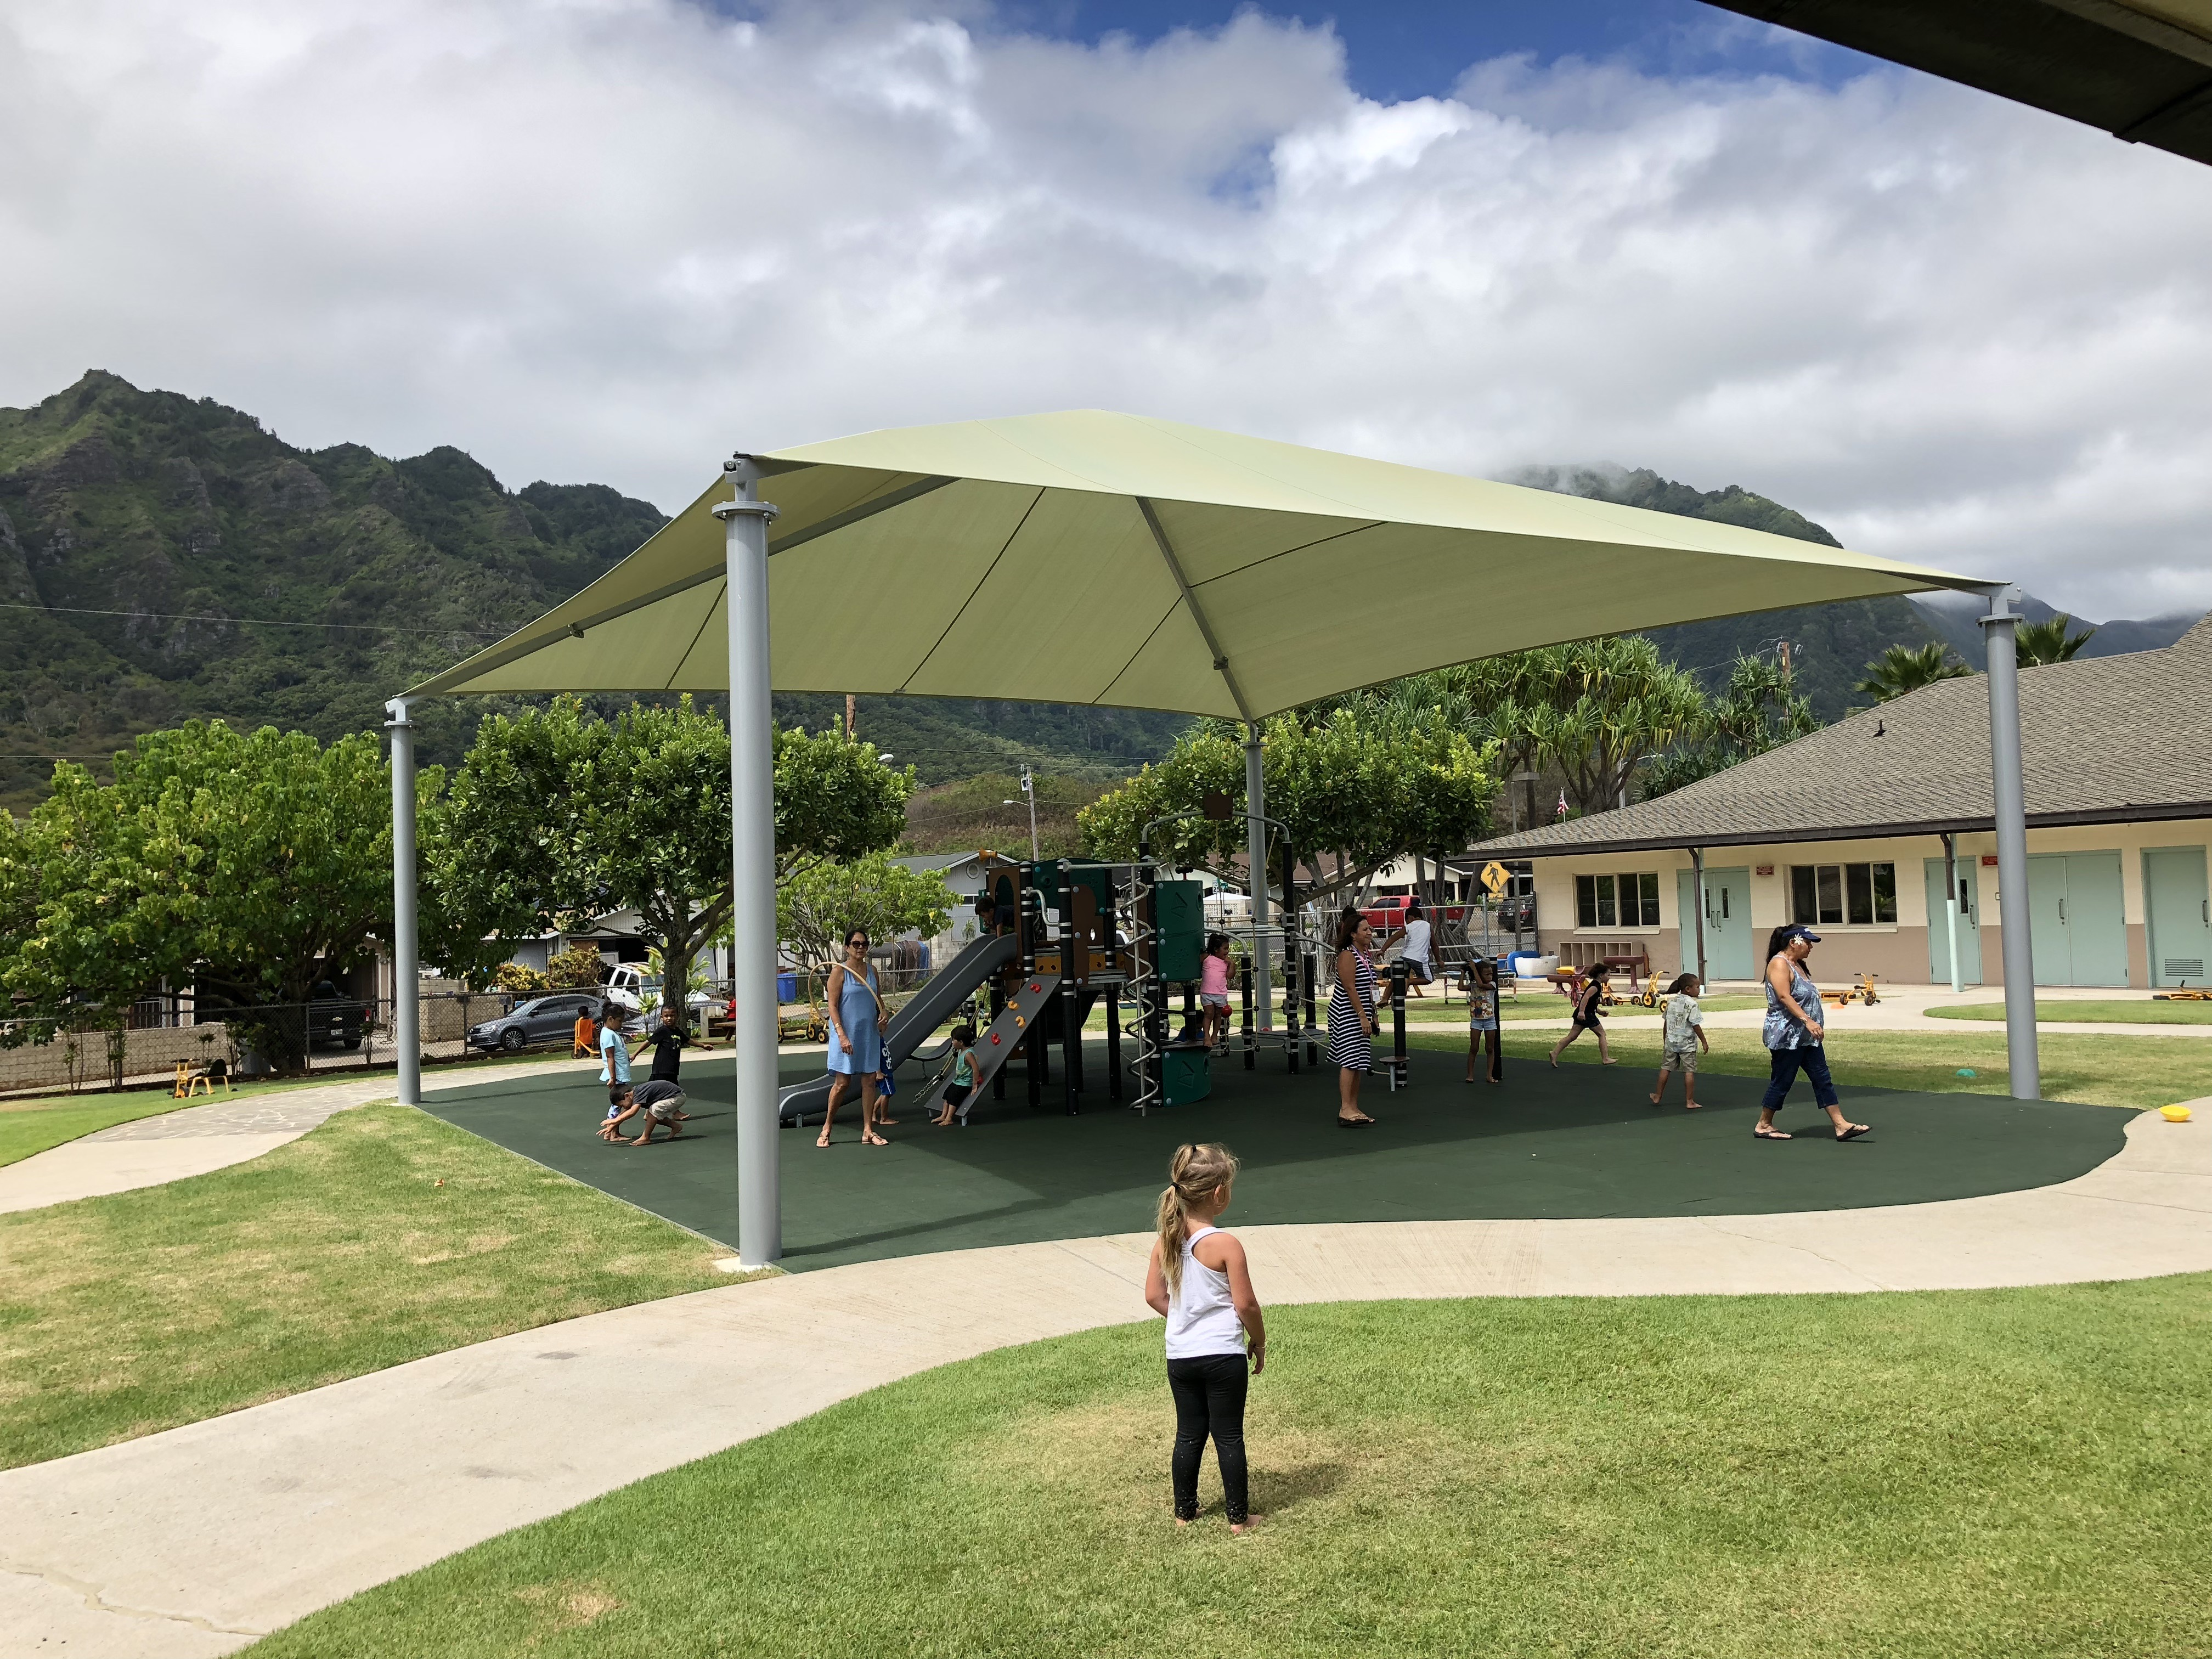 awnings, tents, shade structures parks and playgrounds